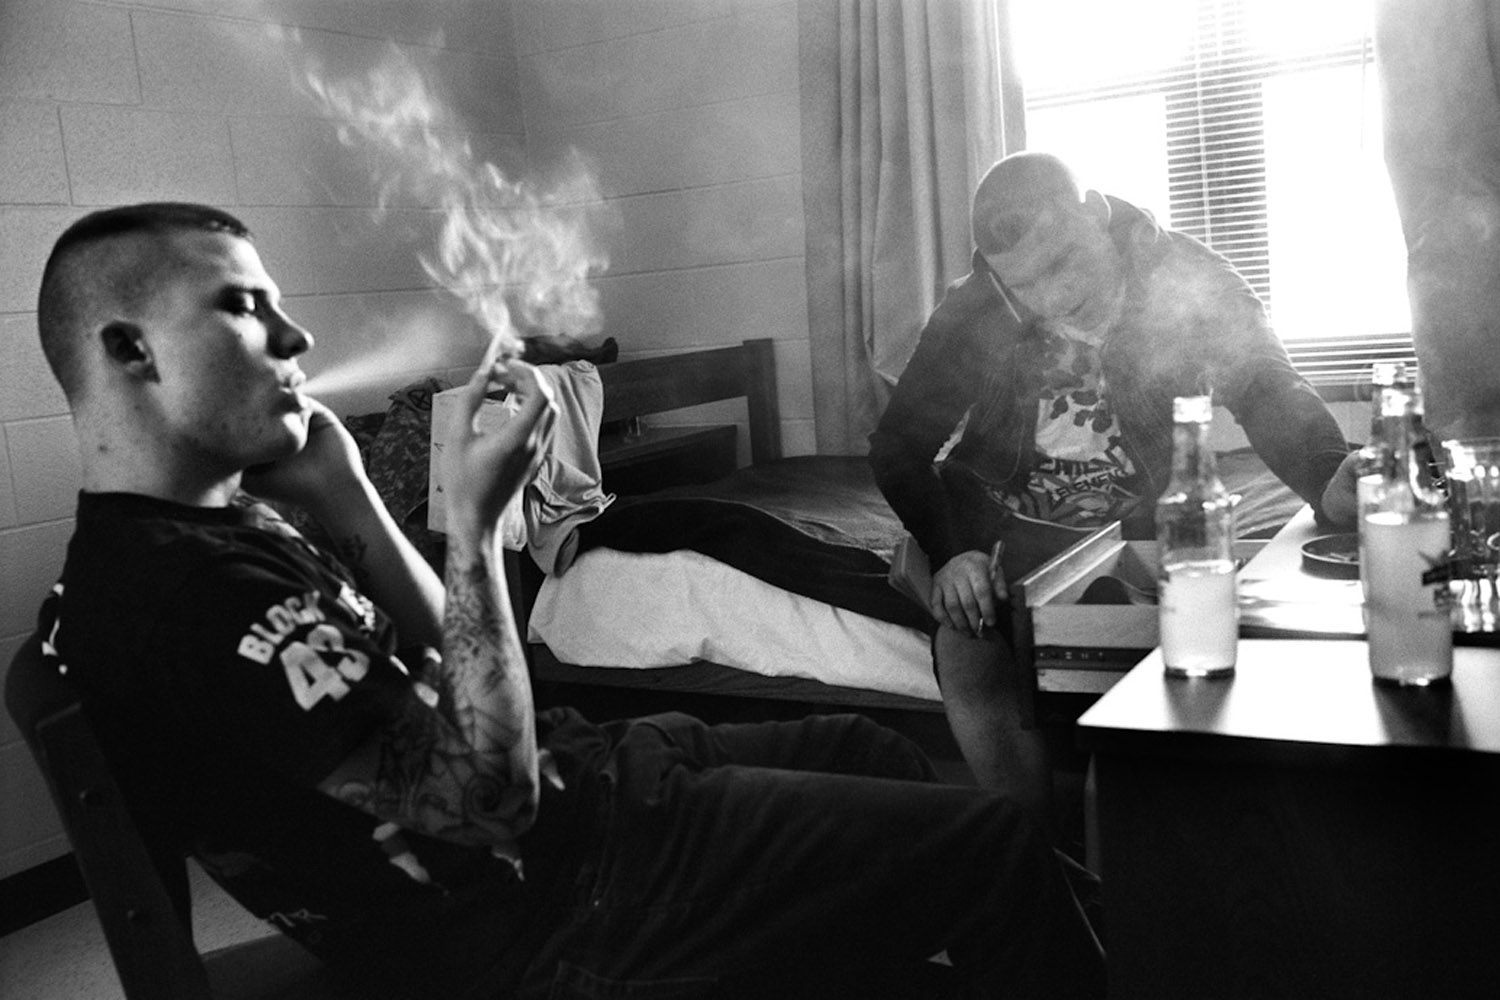 Specialists Ryan Cooley (left) and Adam Ramsey (right) smoke cigarettes in the infantry barracks, which houses unmarried soldiers, at Fort Drum, N.Y.  January 2010.